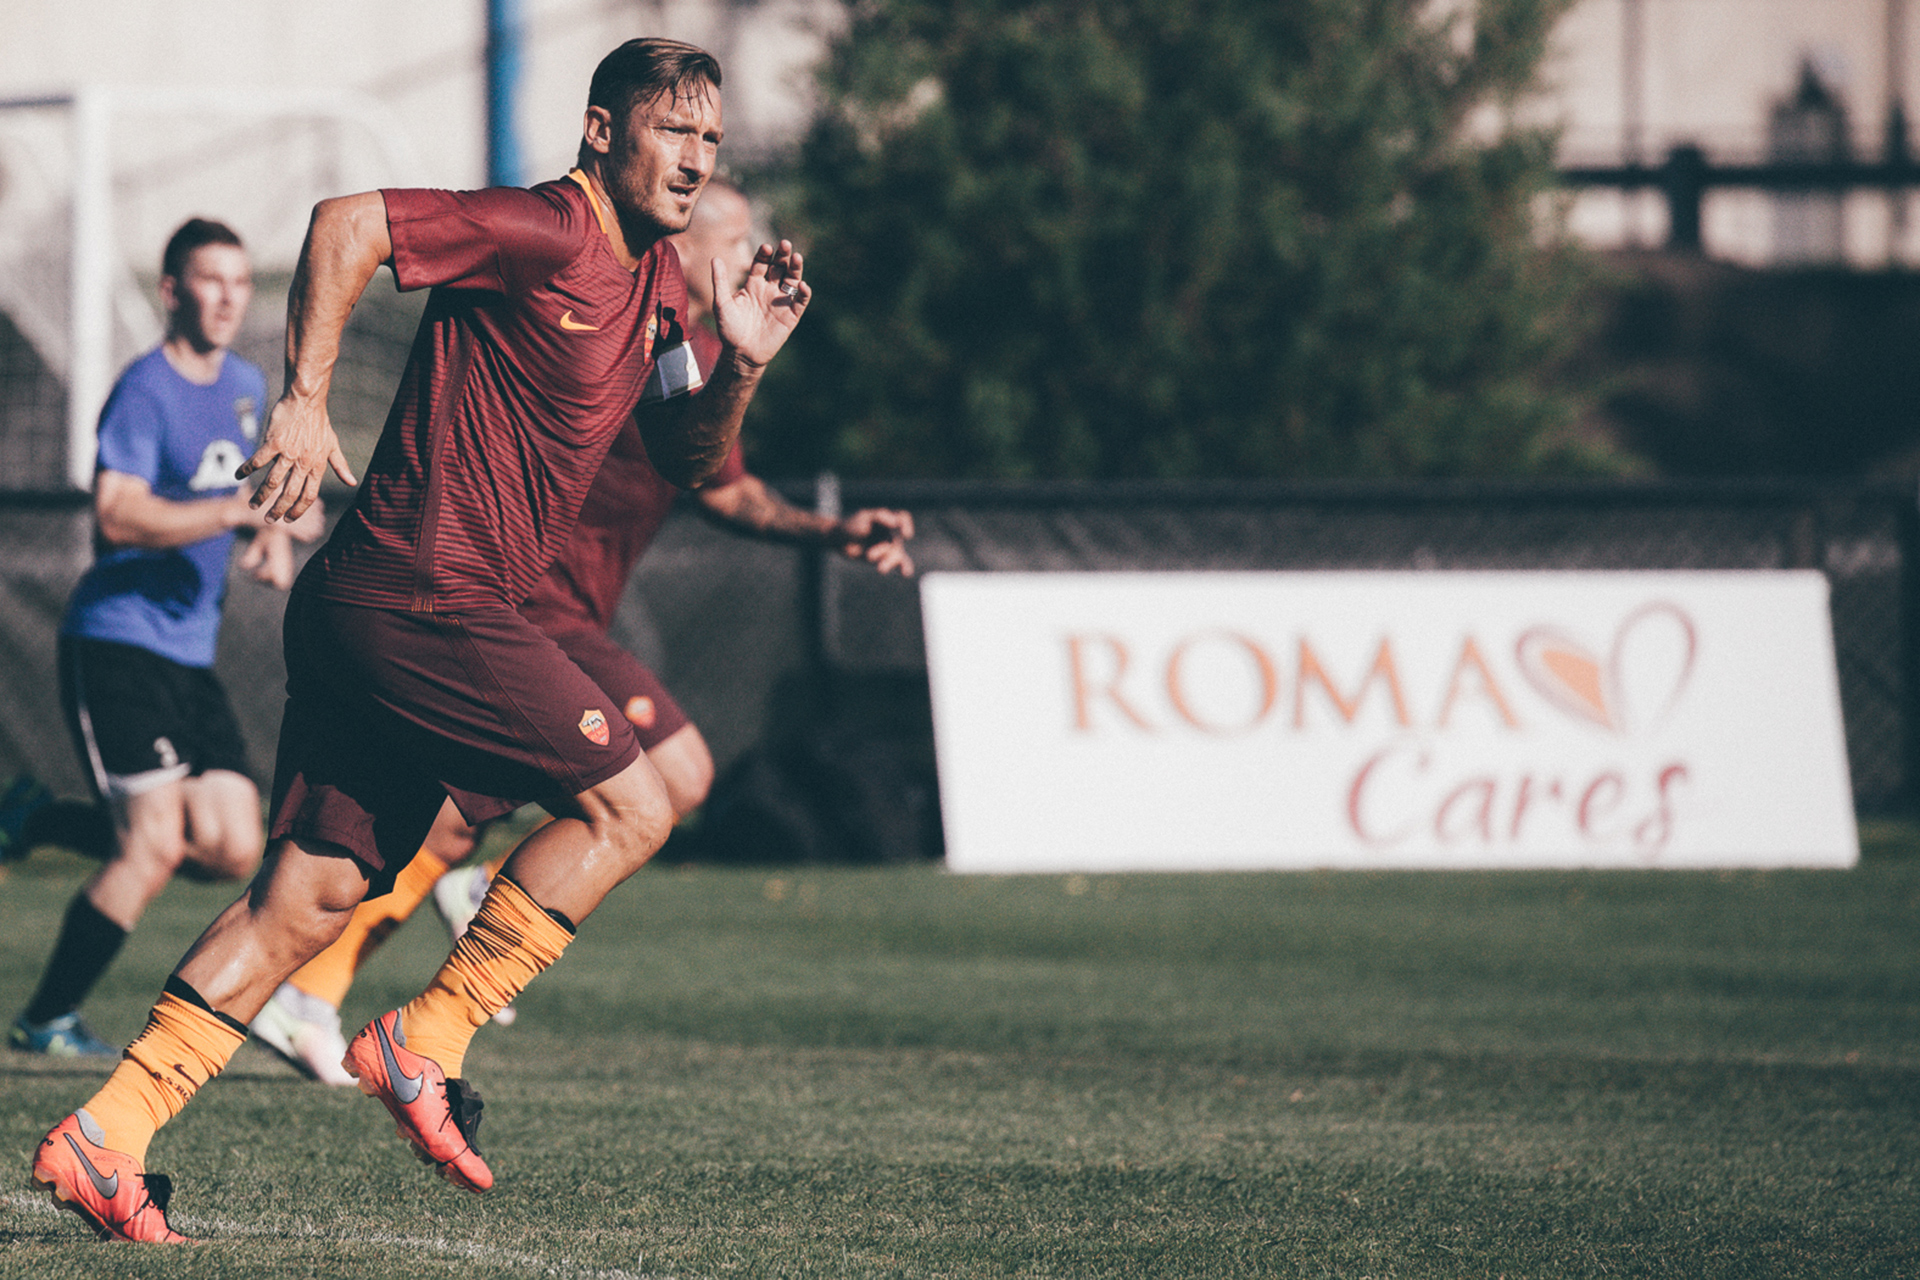 Totti records: he played 25 years with AS Roma